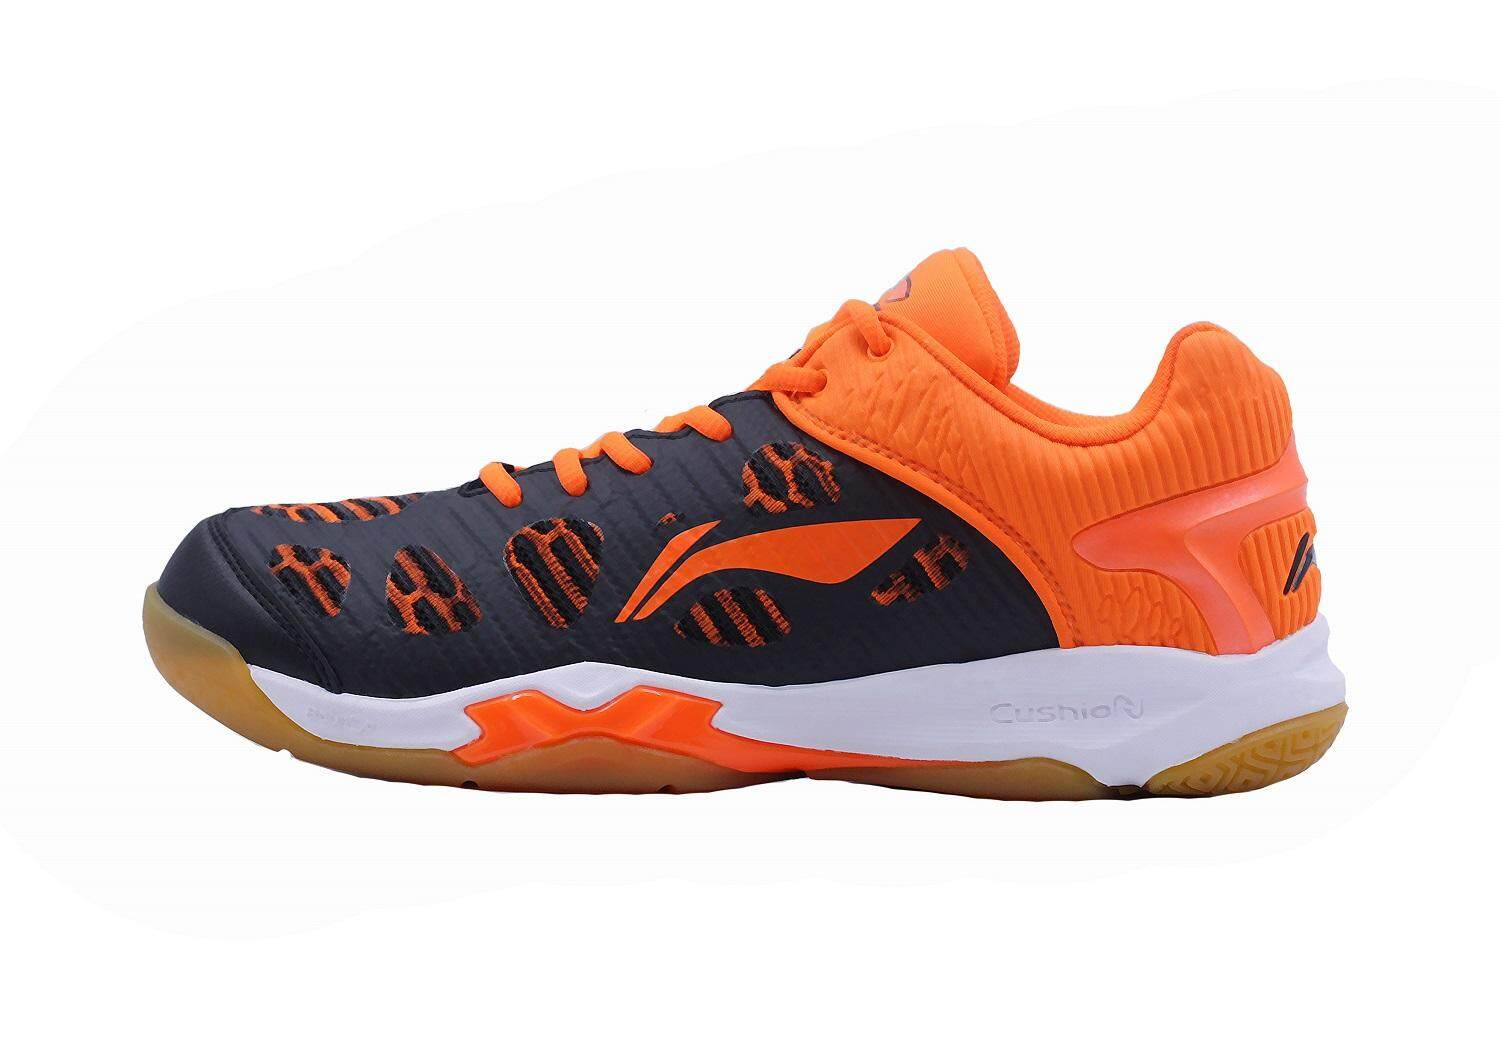 Li-Ning Ranger Badminton Training Shoes - Black/Orange AYTM115-3